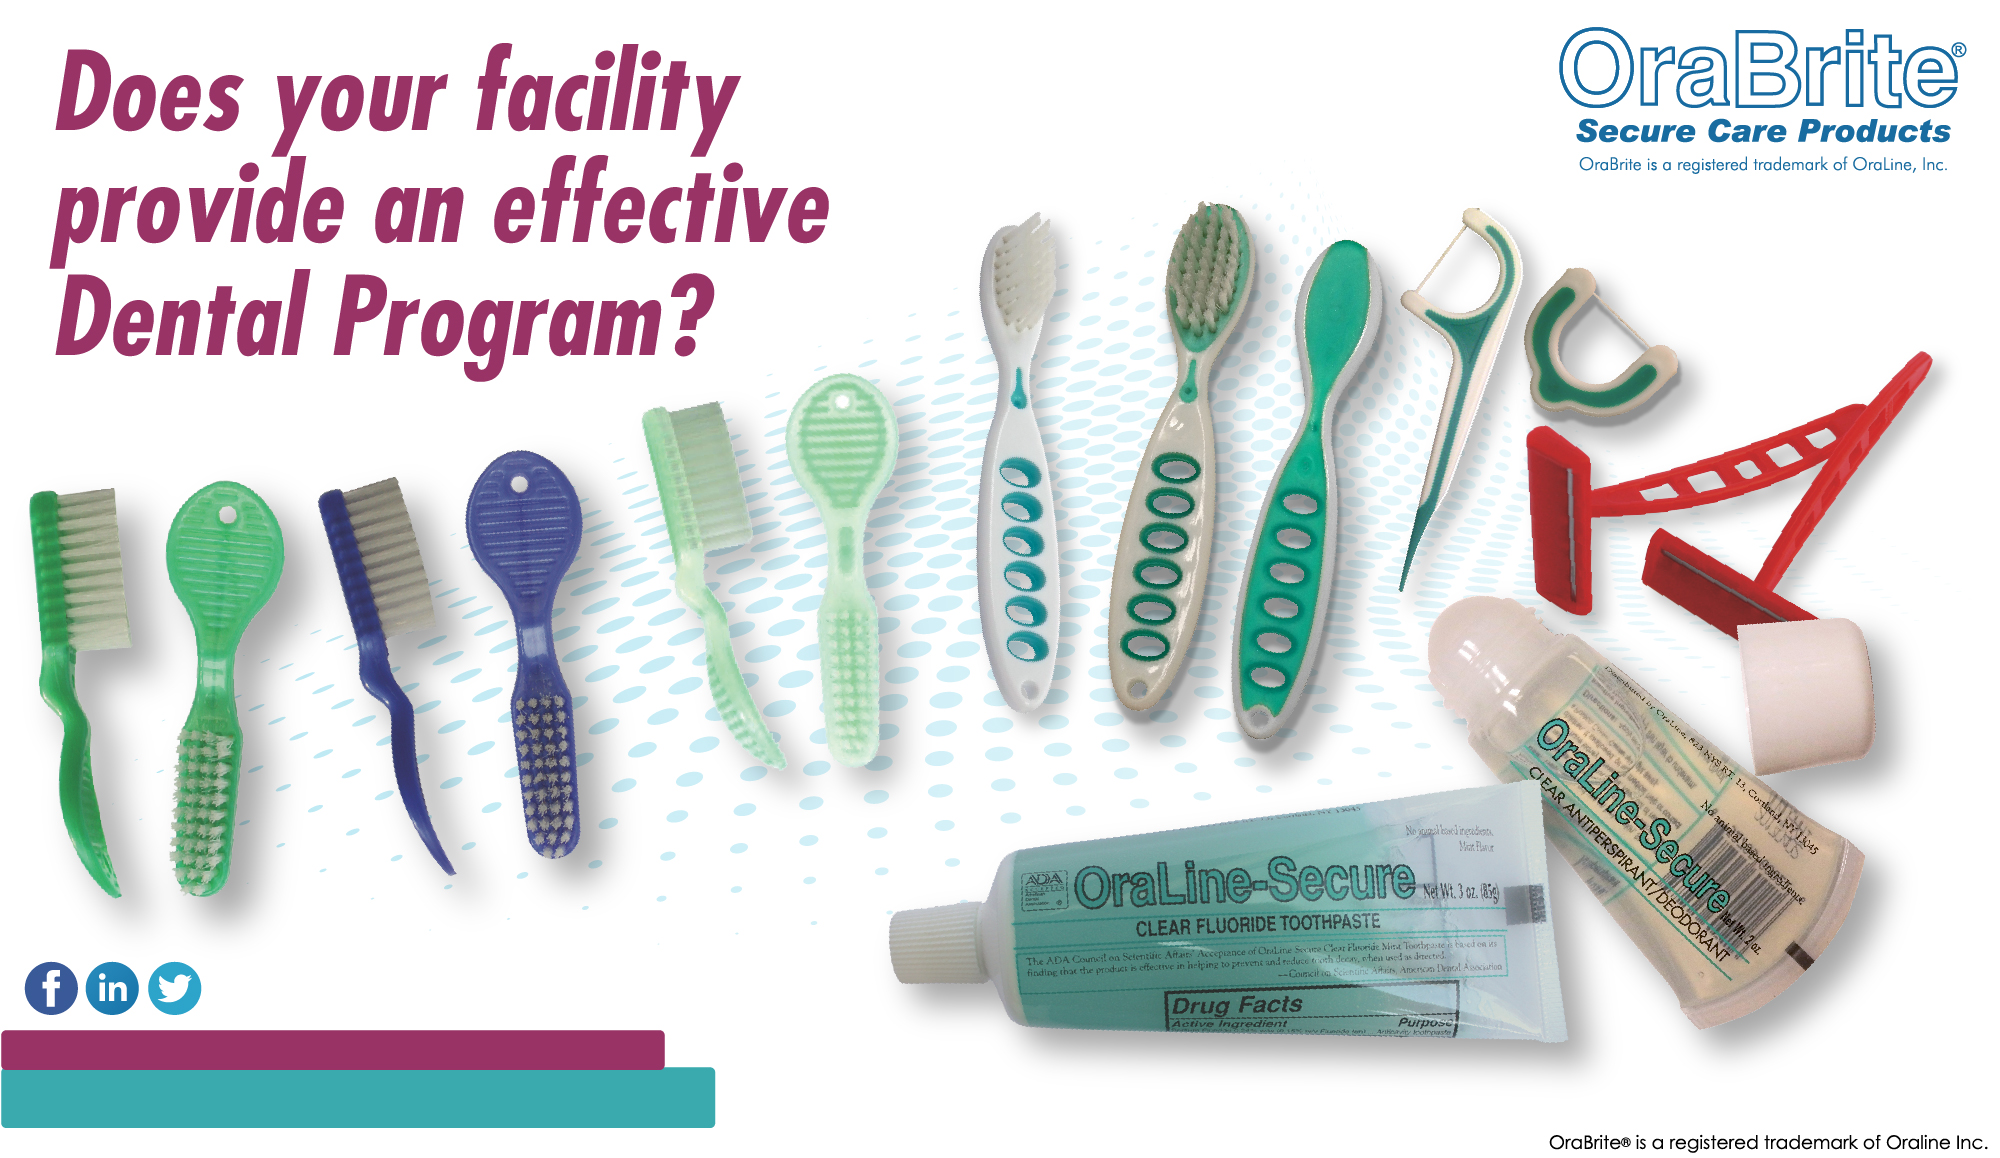 Does your facility provide an effective dental program?